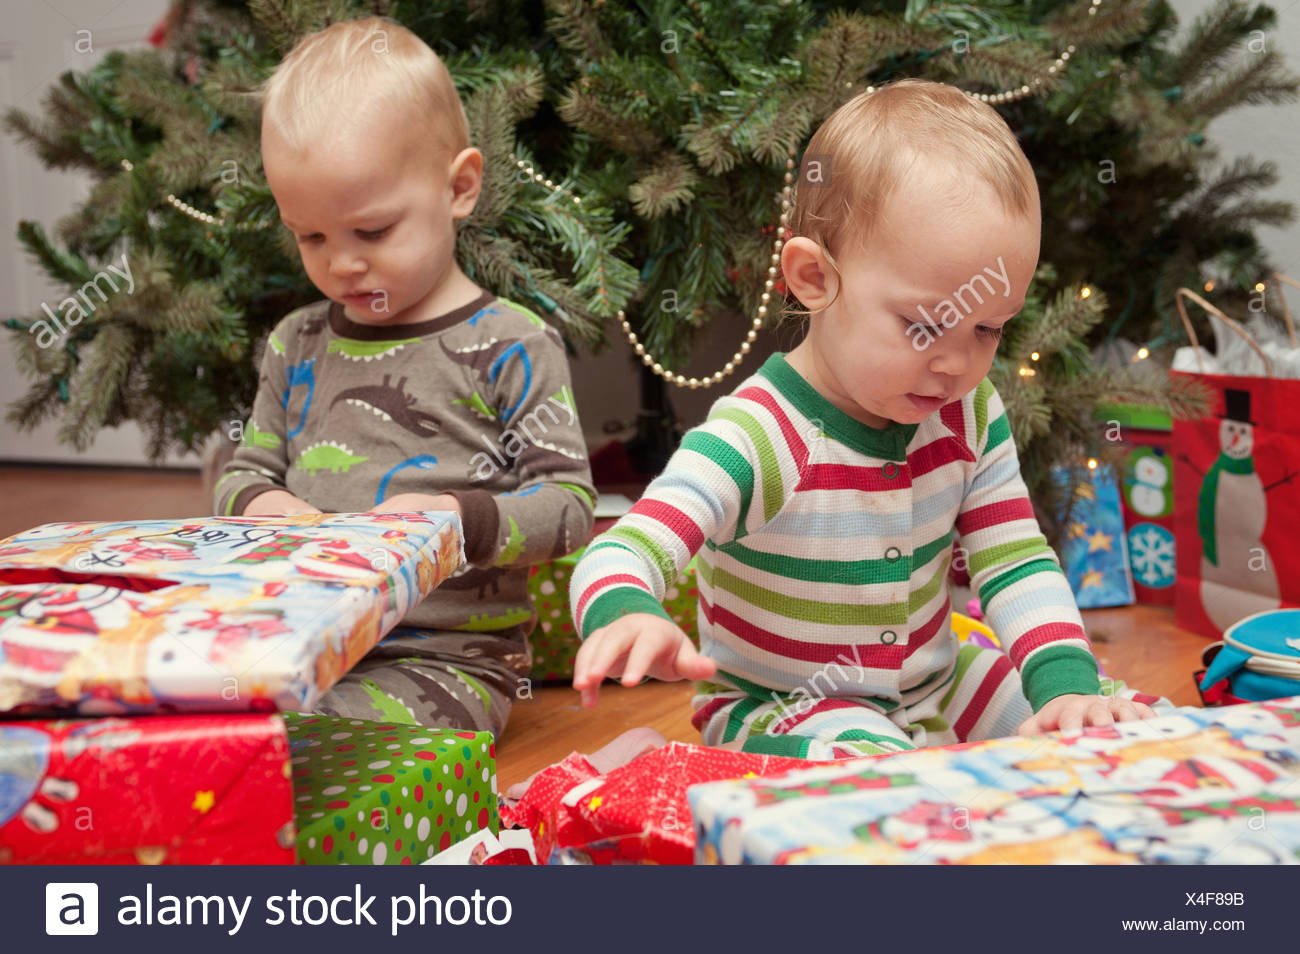 Christmas Presents For Brother.Brother And Sister Looking At Christmas Presents Stock Photo